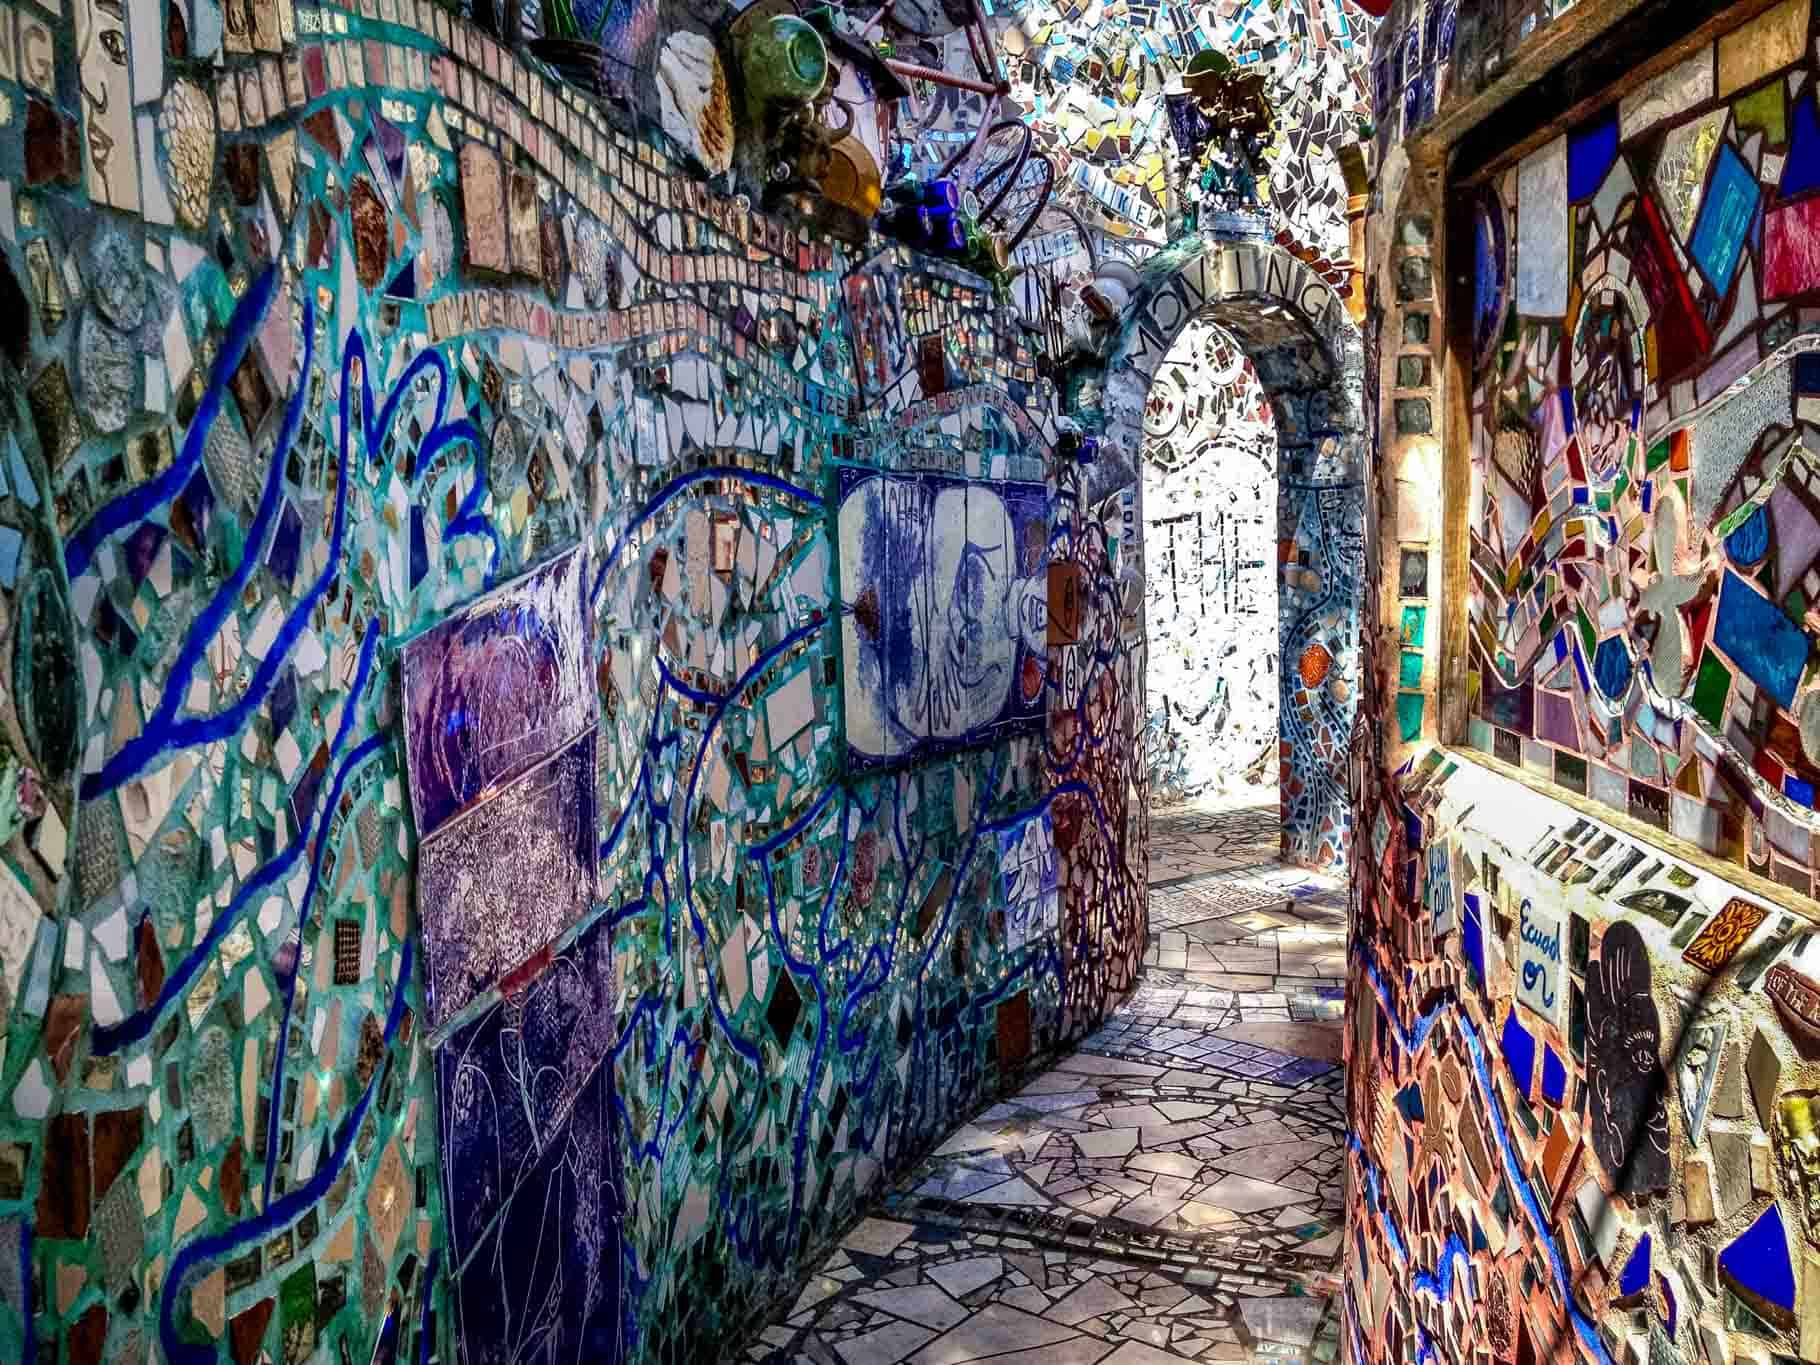 Walls and walkway covered entirely in brightly colored mosaics